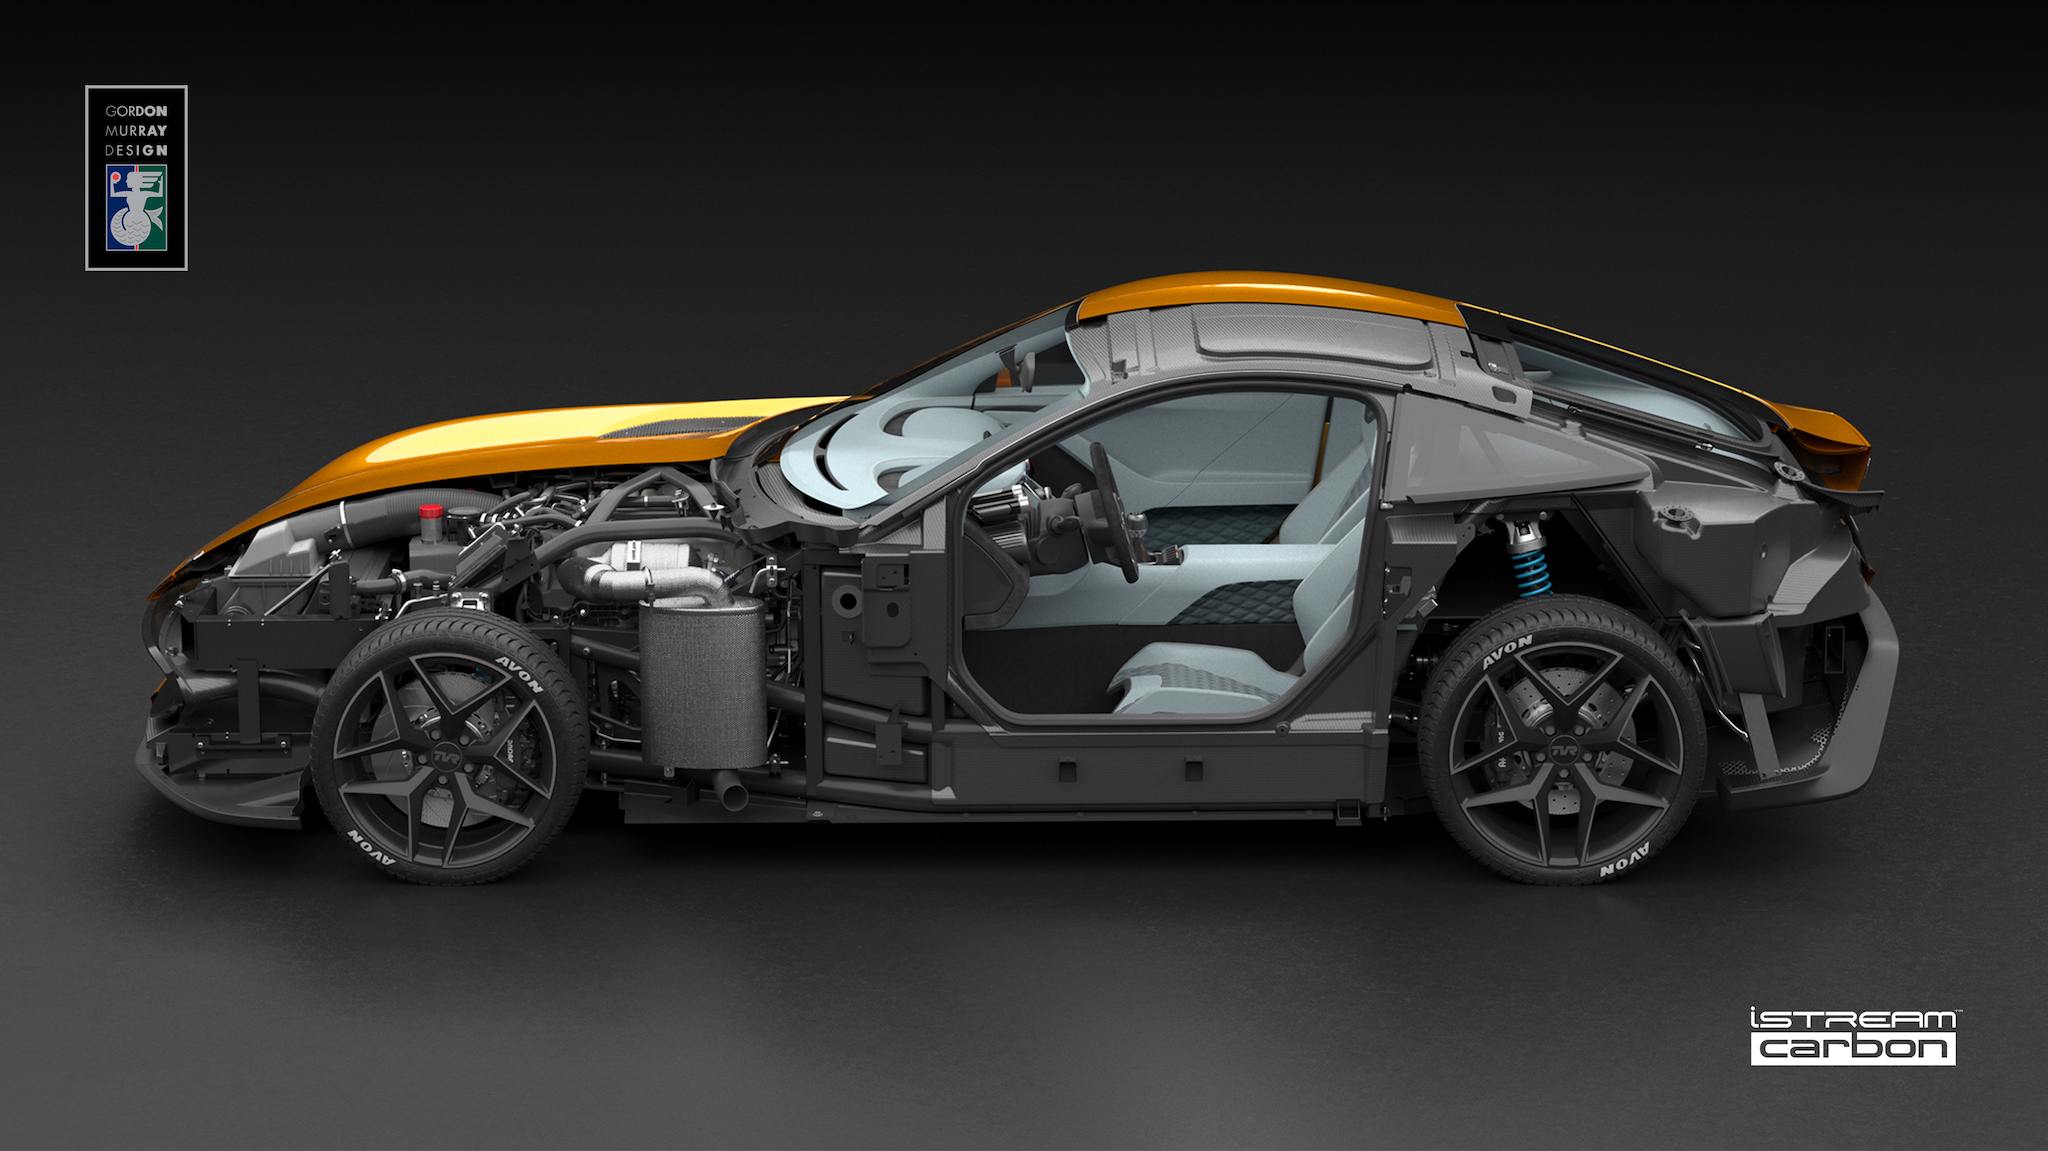 Gordon Murray\'s new car company has got me excited | Ars Technica